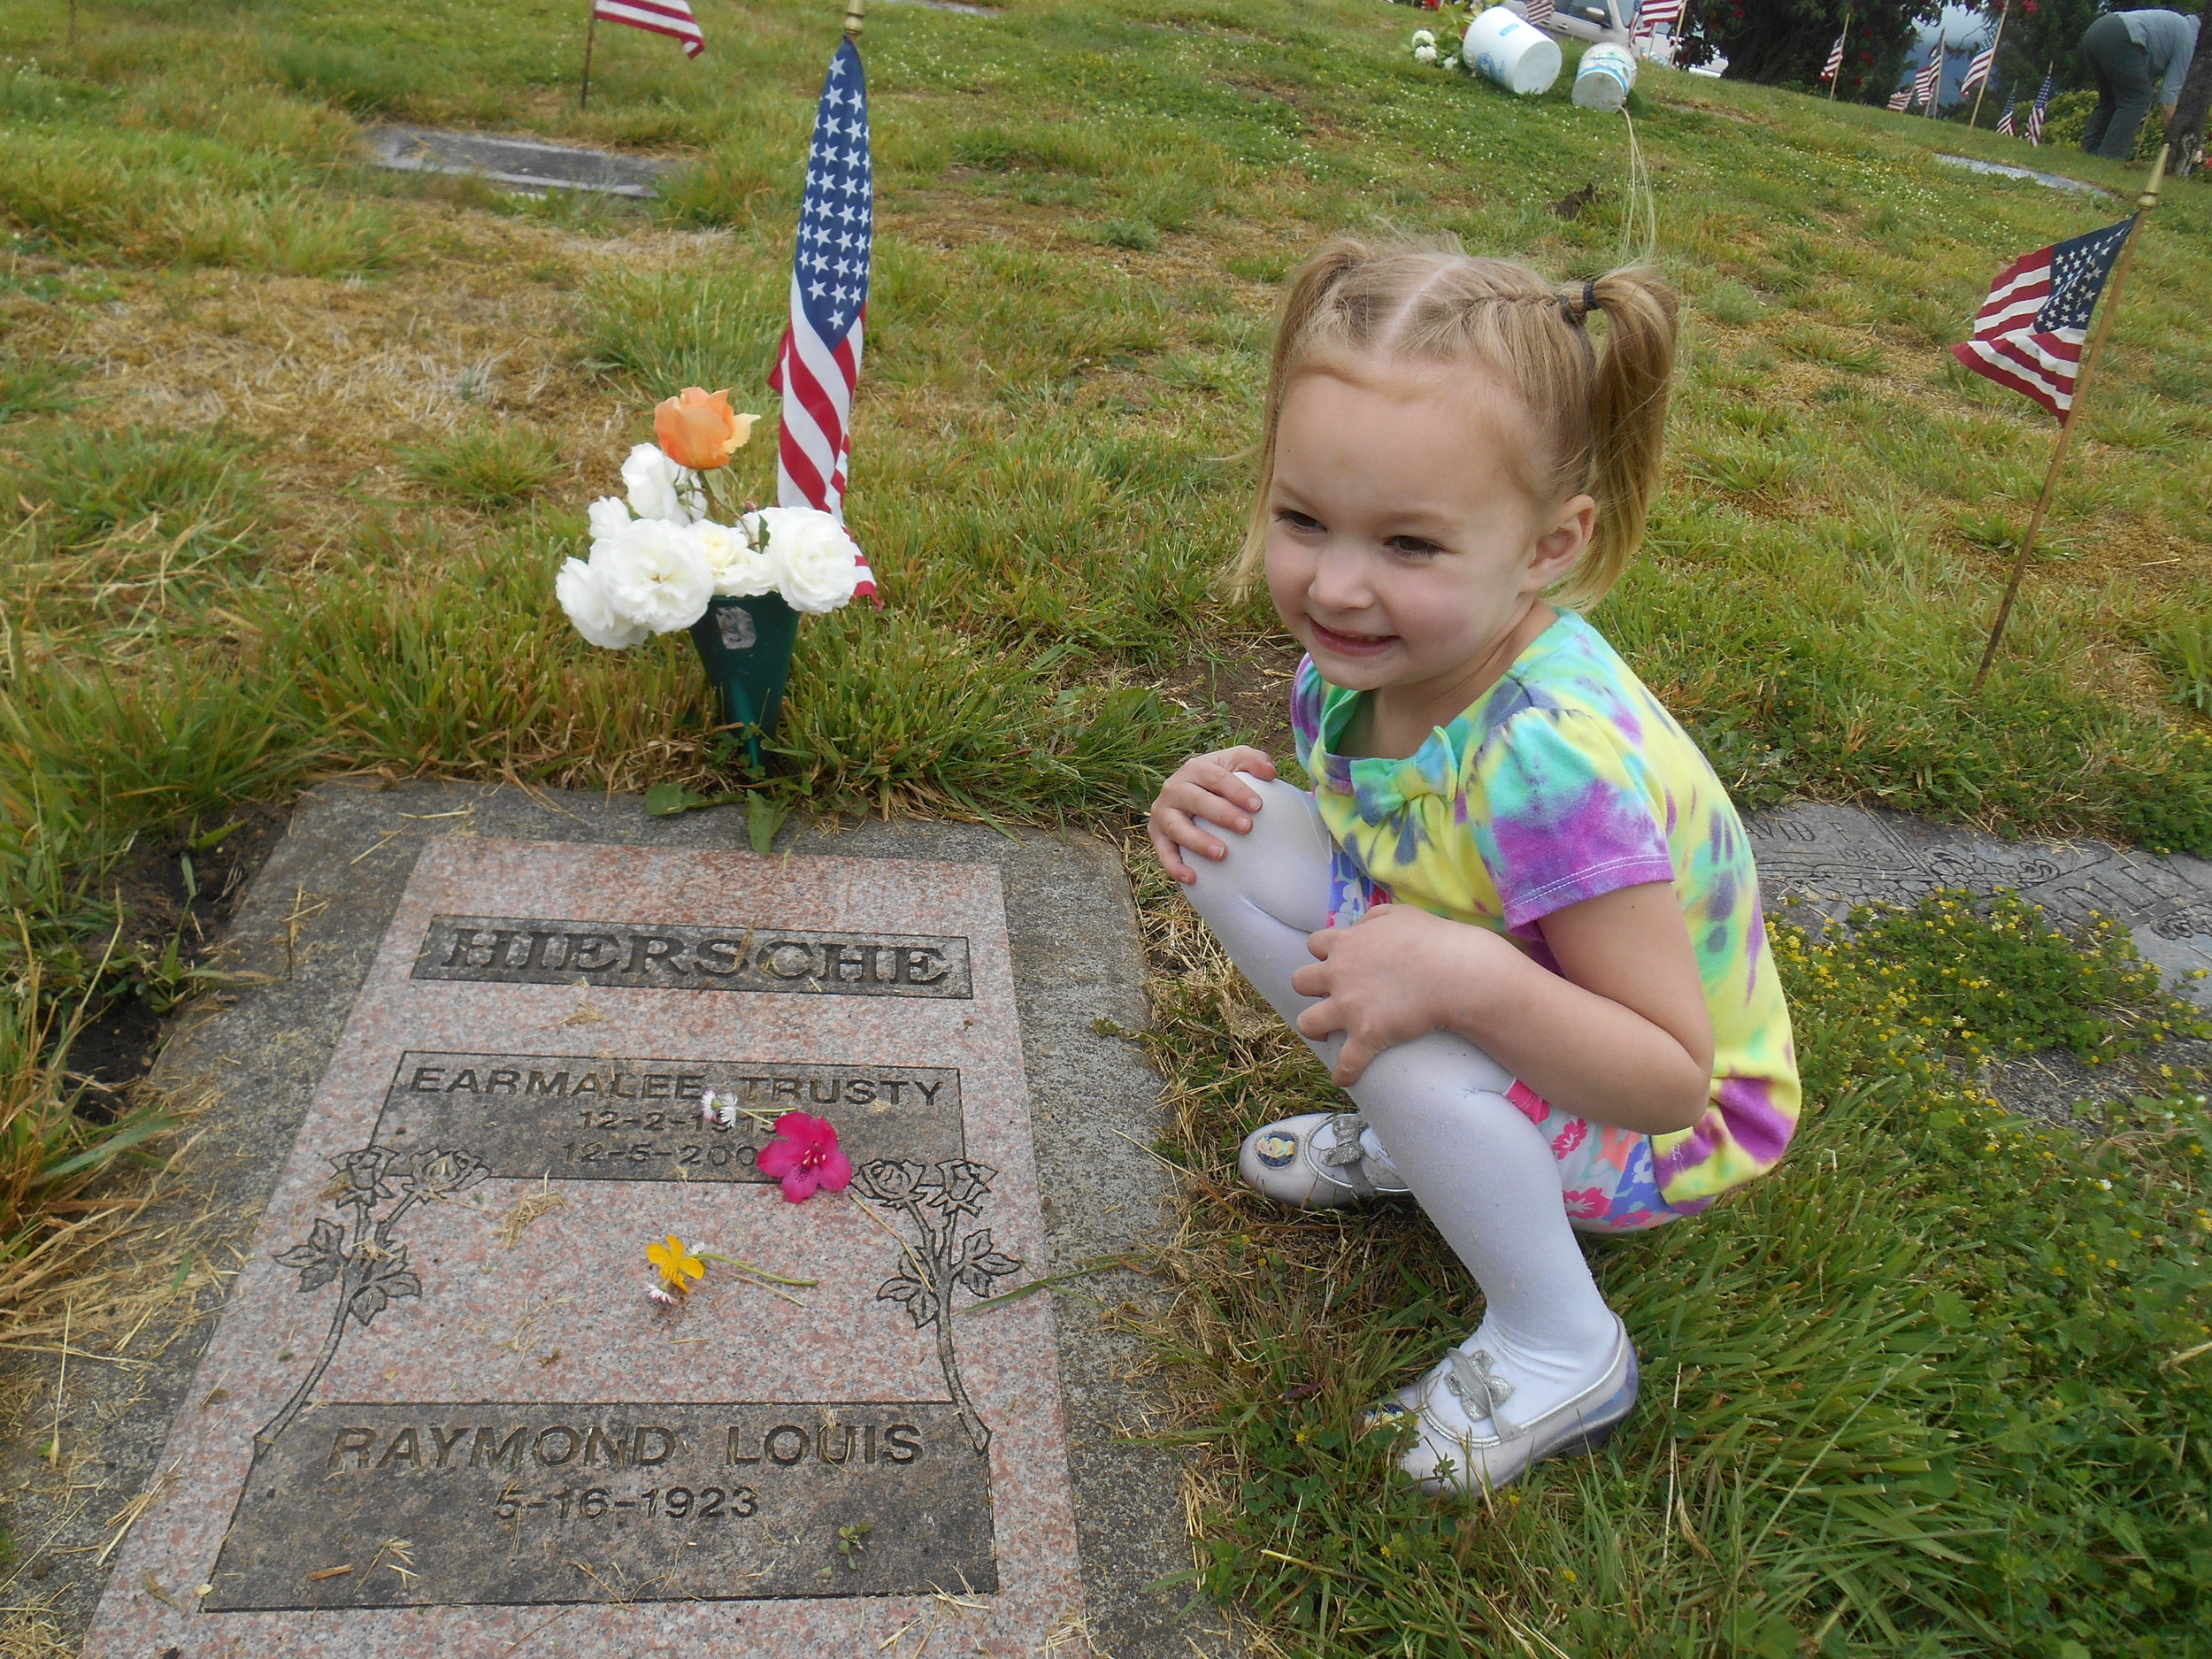 Ruby placed some flowers on this grave as I told her about my Granny who died before Ruby could meet her.